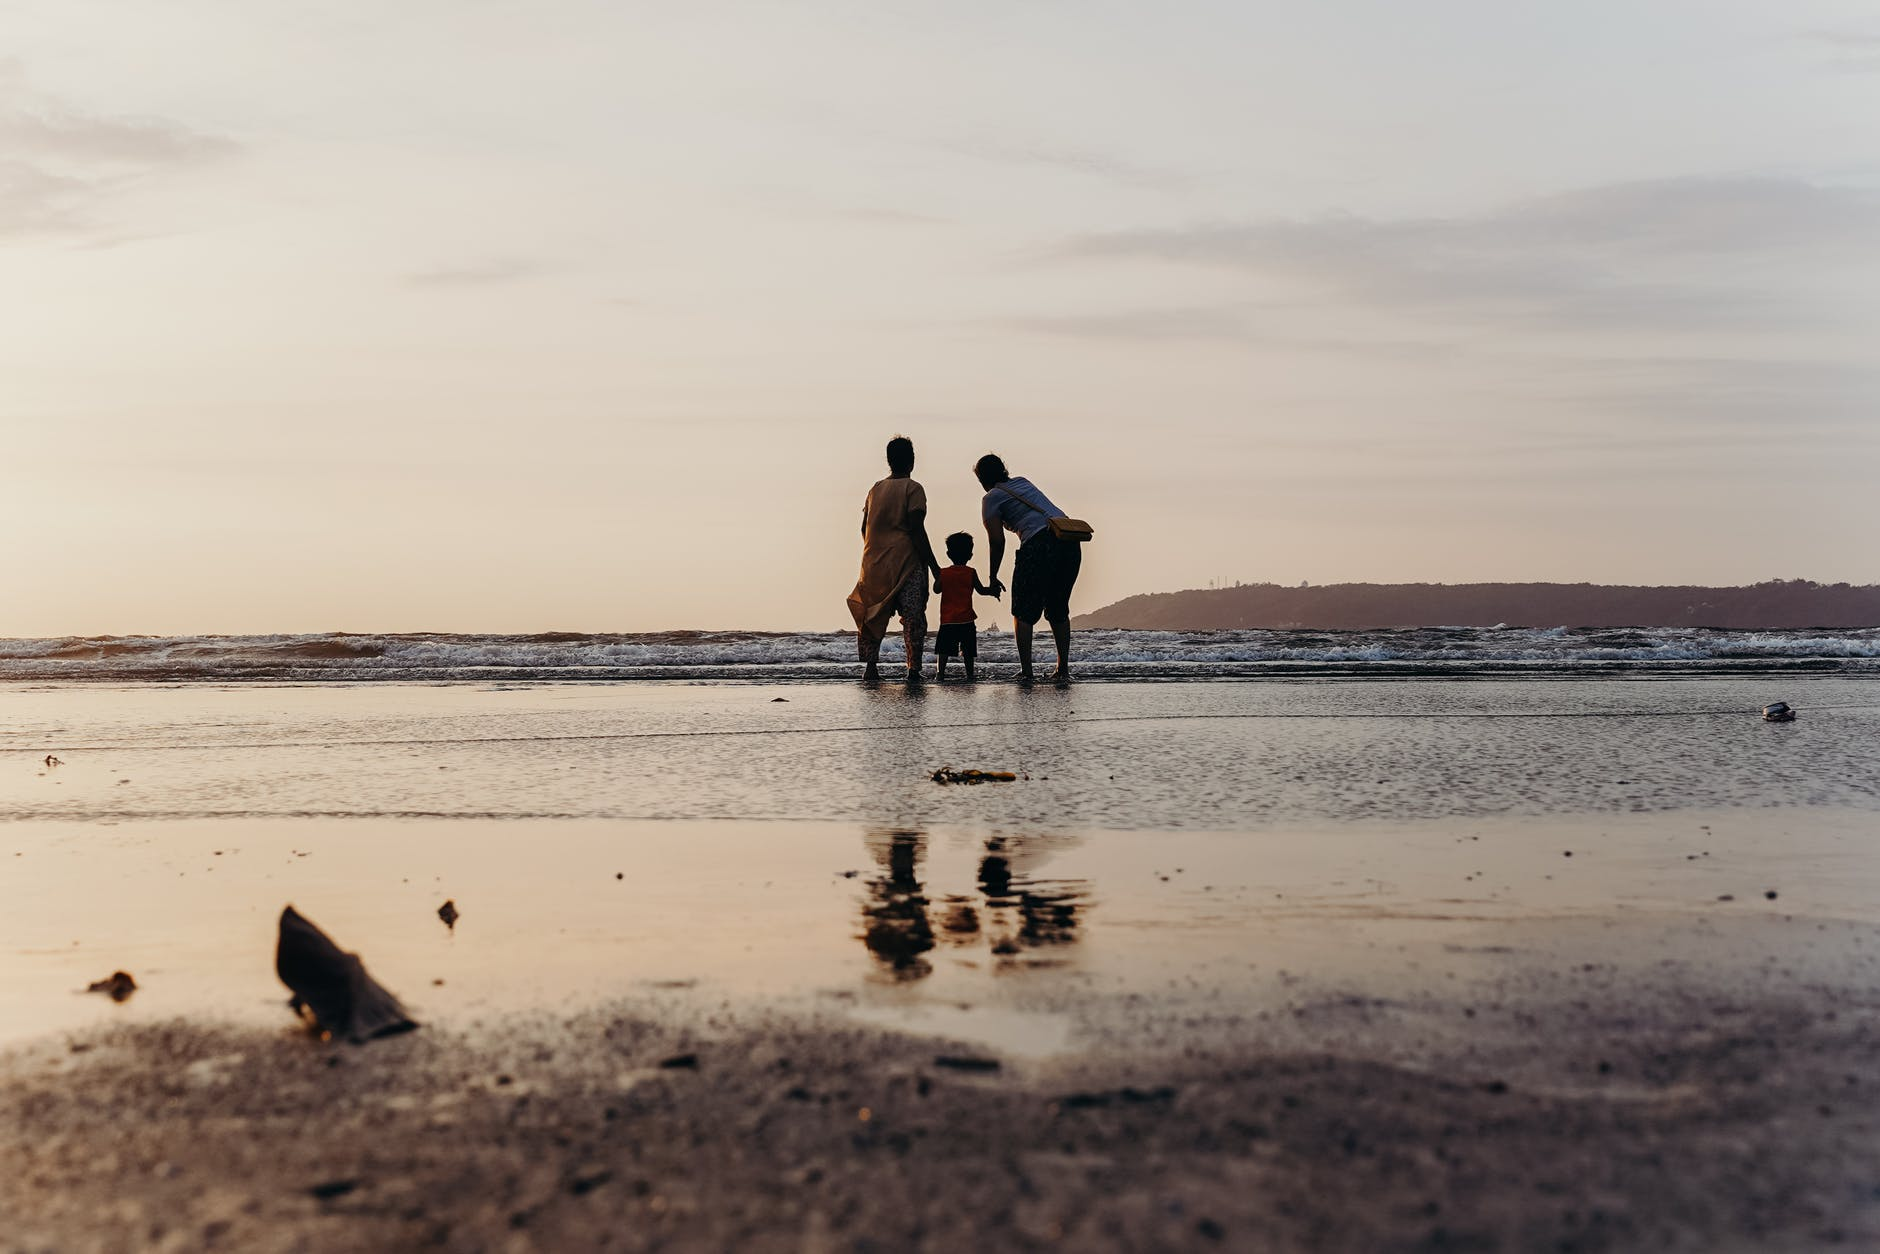 photo of three people standing on beach